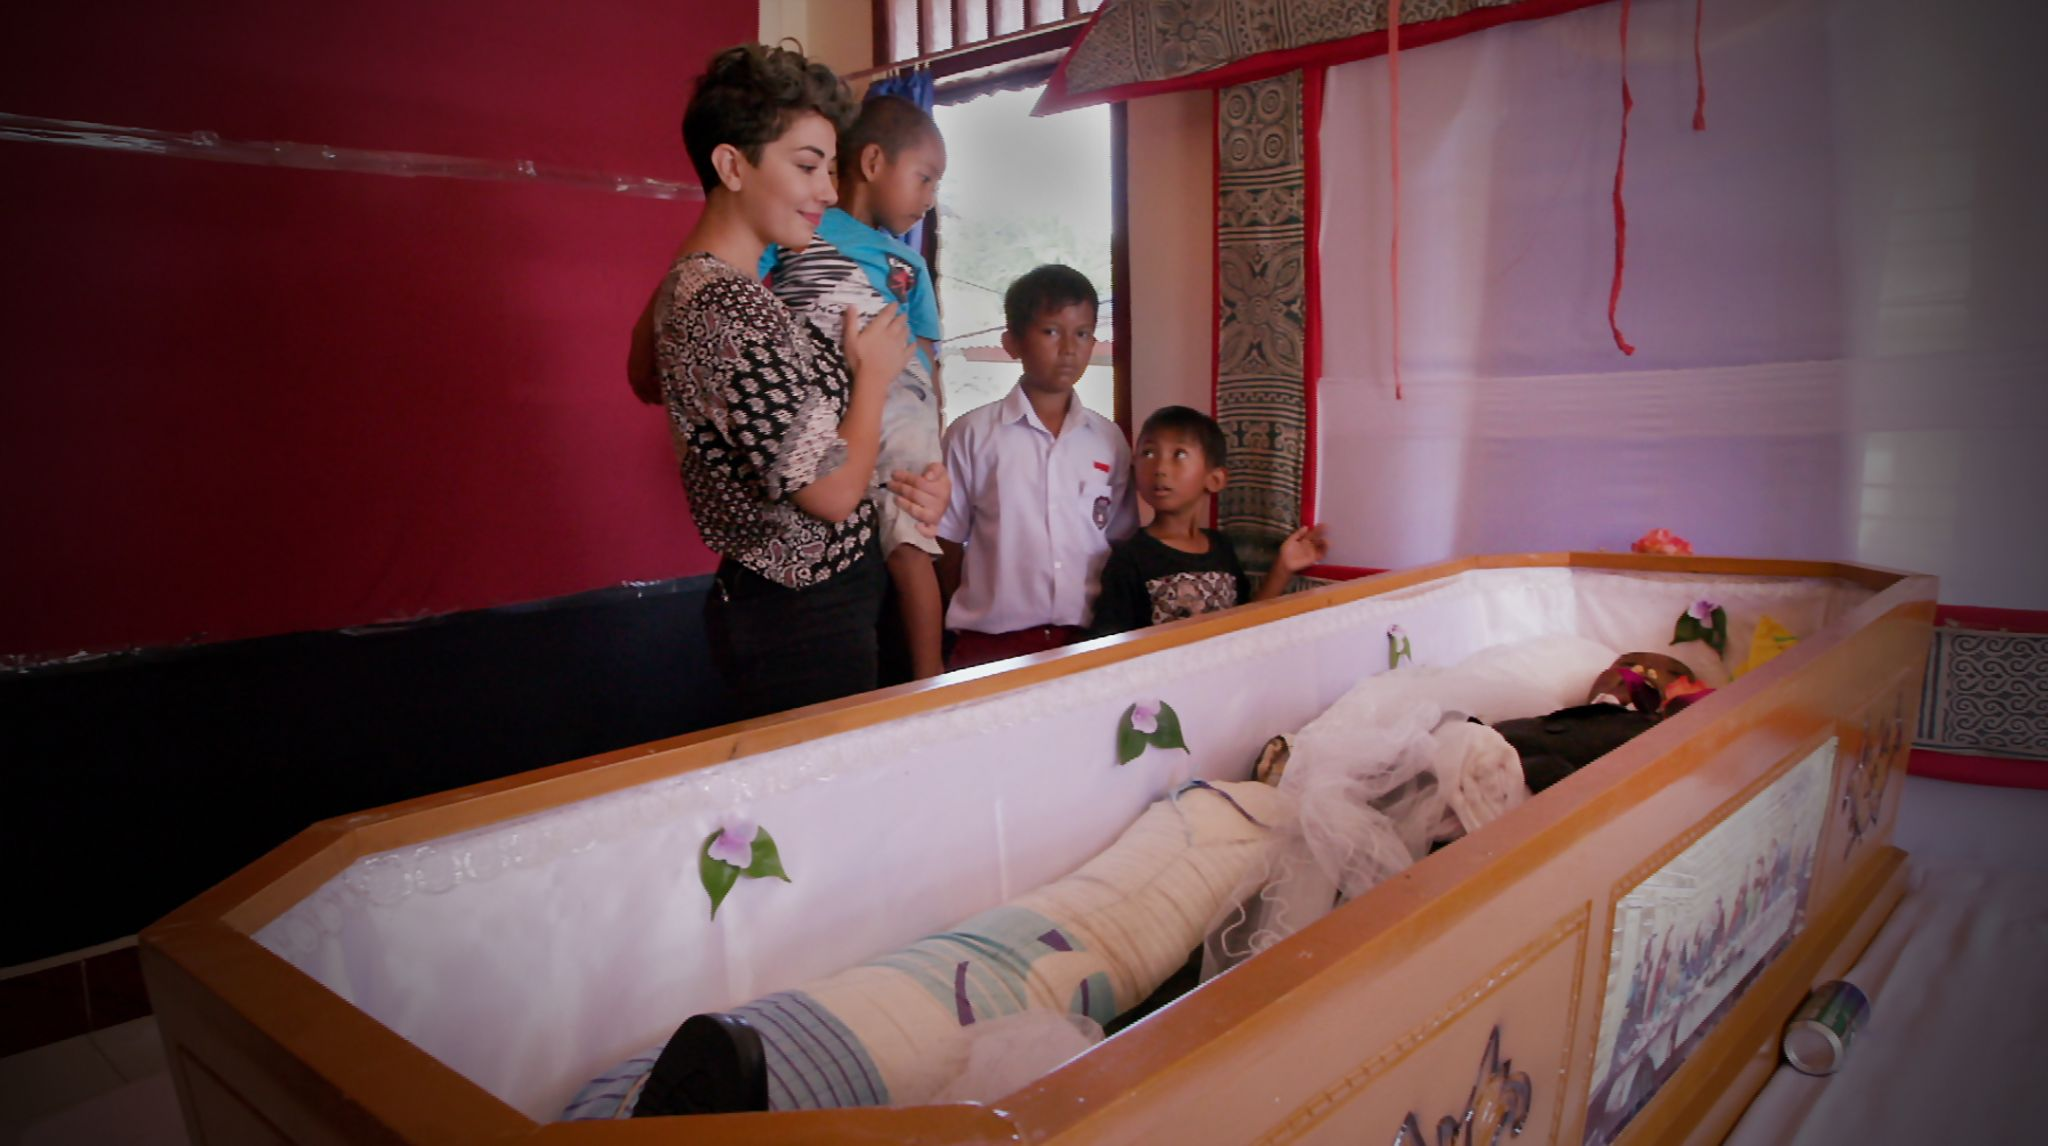 Sahar Zand with children observing a dead body in someone's house